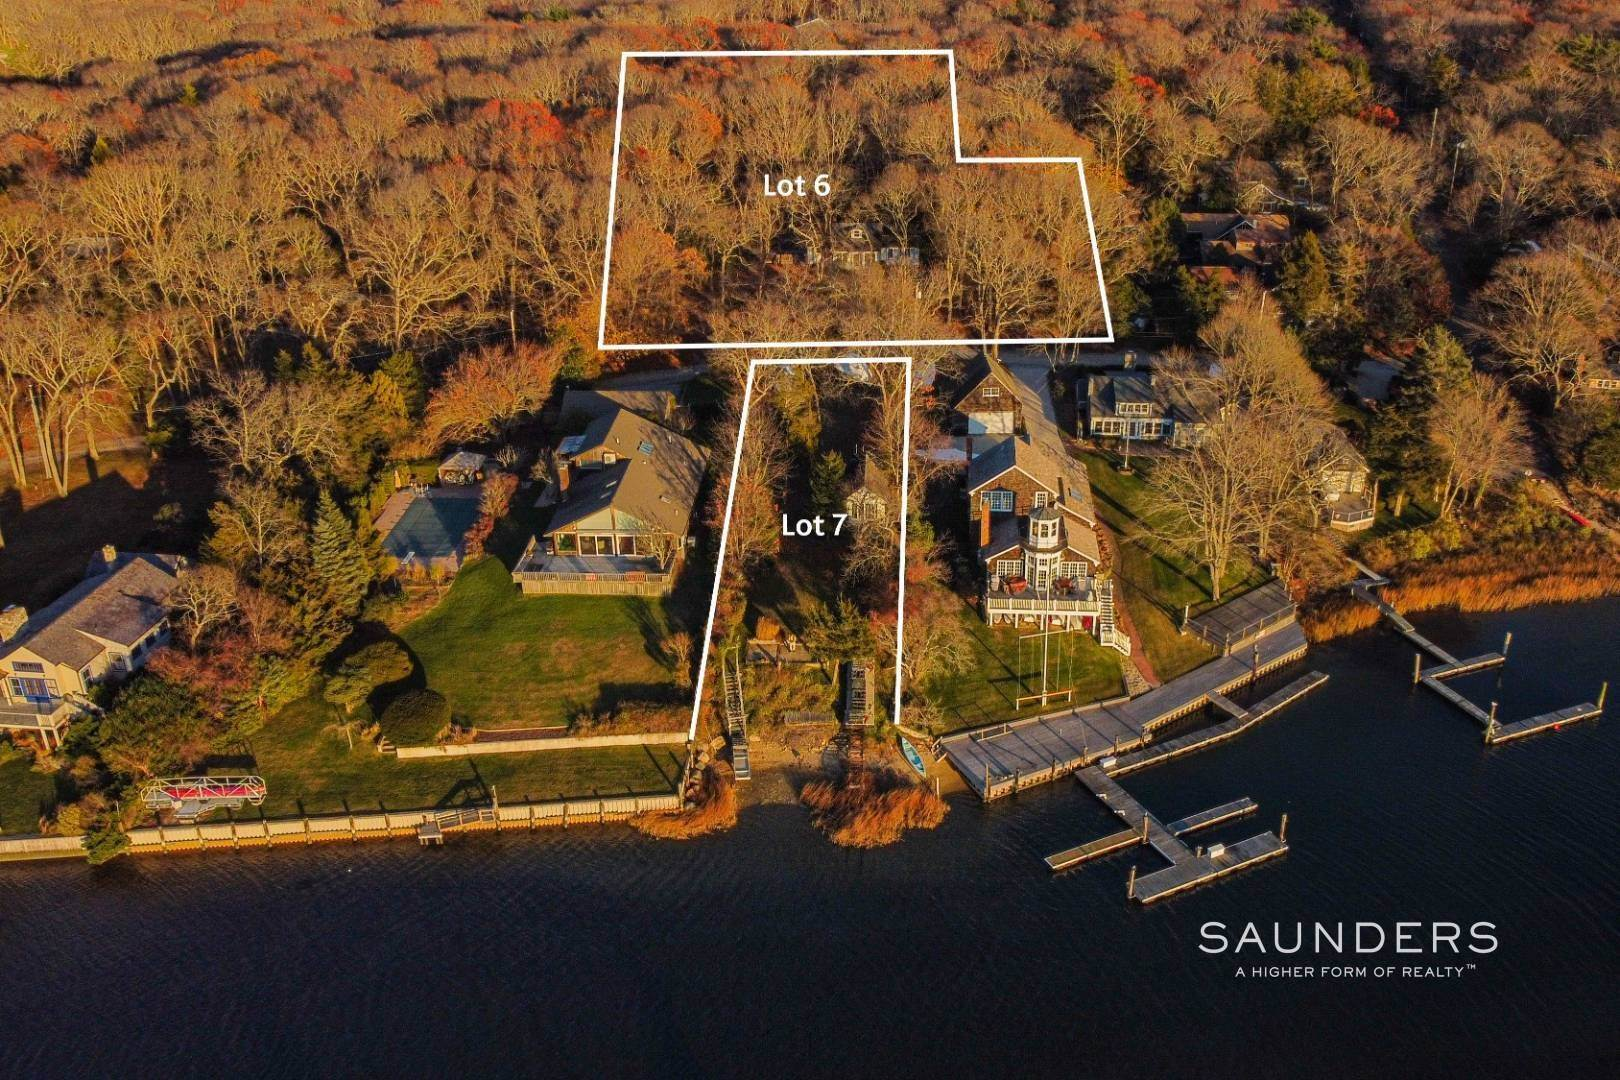 Single Family Homes at 3 M H Waterfront : Bld A 2600 Sq Ft Home With Dock /+1 Acre Lot! 6 And 7 Outlook Ave, East Hampton, East Hampton Town, NY 11937